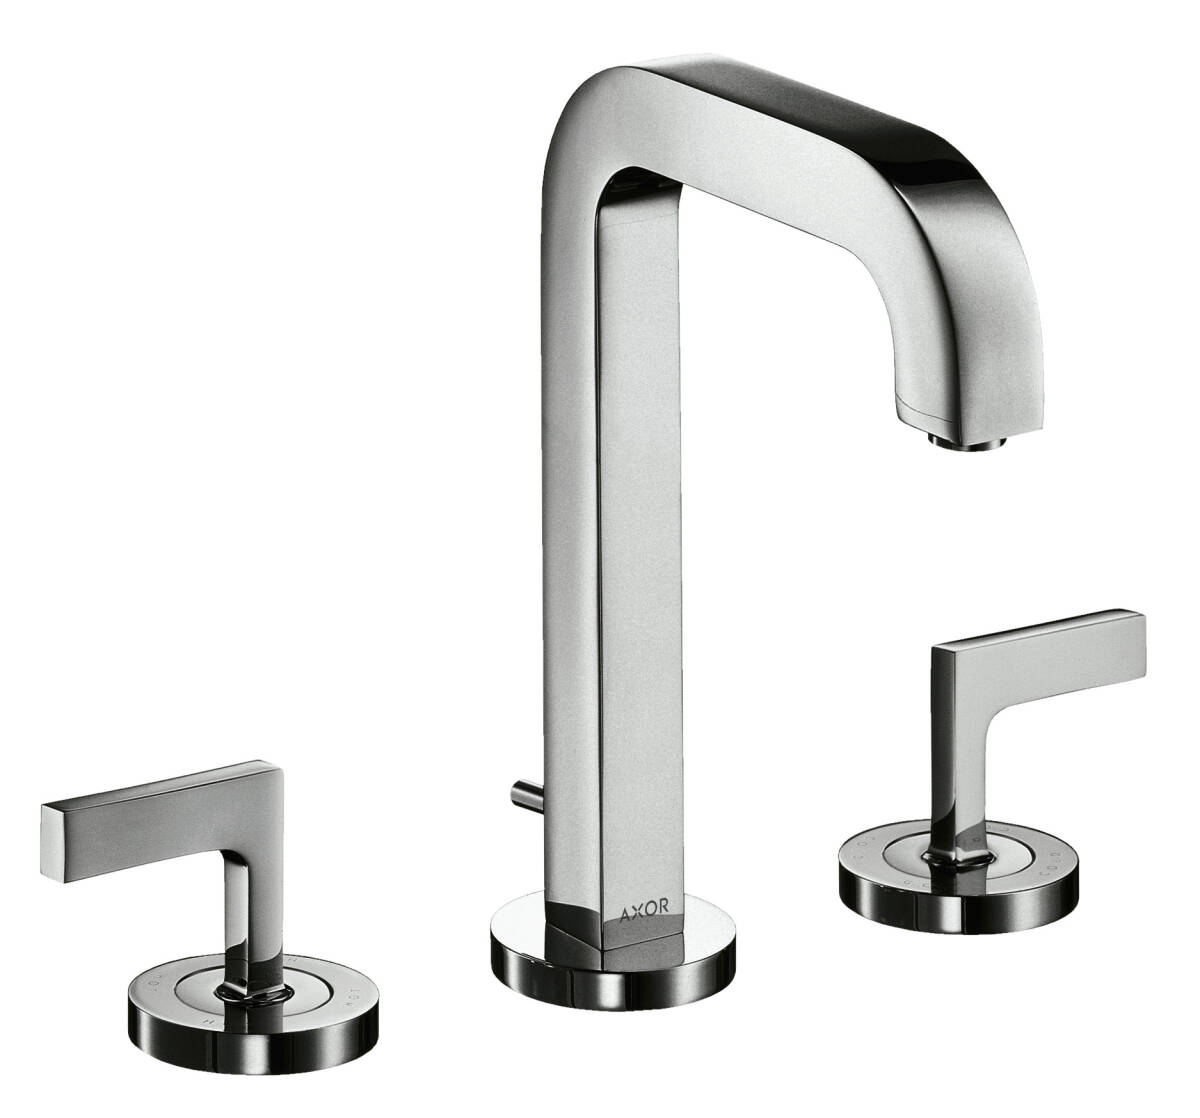 3-hole basin mixer 170 with spout 140 mm, lever handles, escutcheons and pop-up waste set, Brushed Black Chrome, 39135340